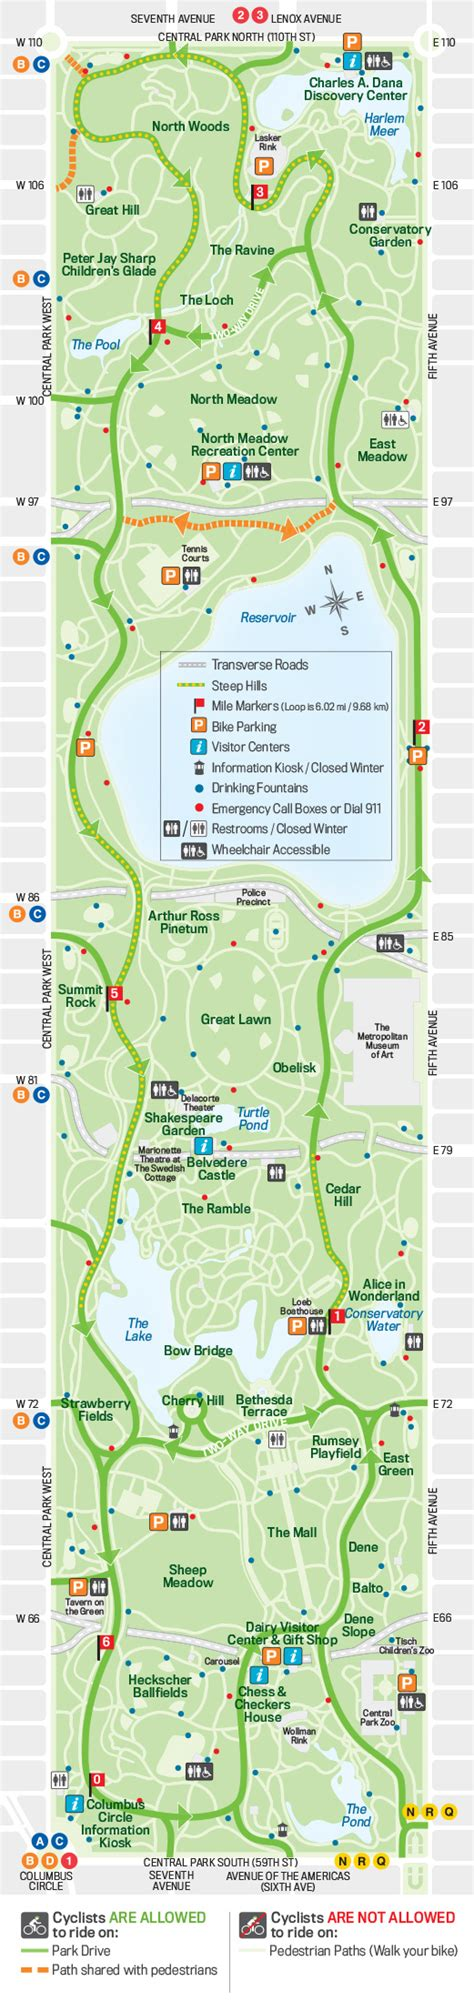 interactive central park map the official website of